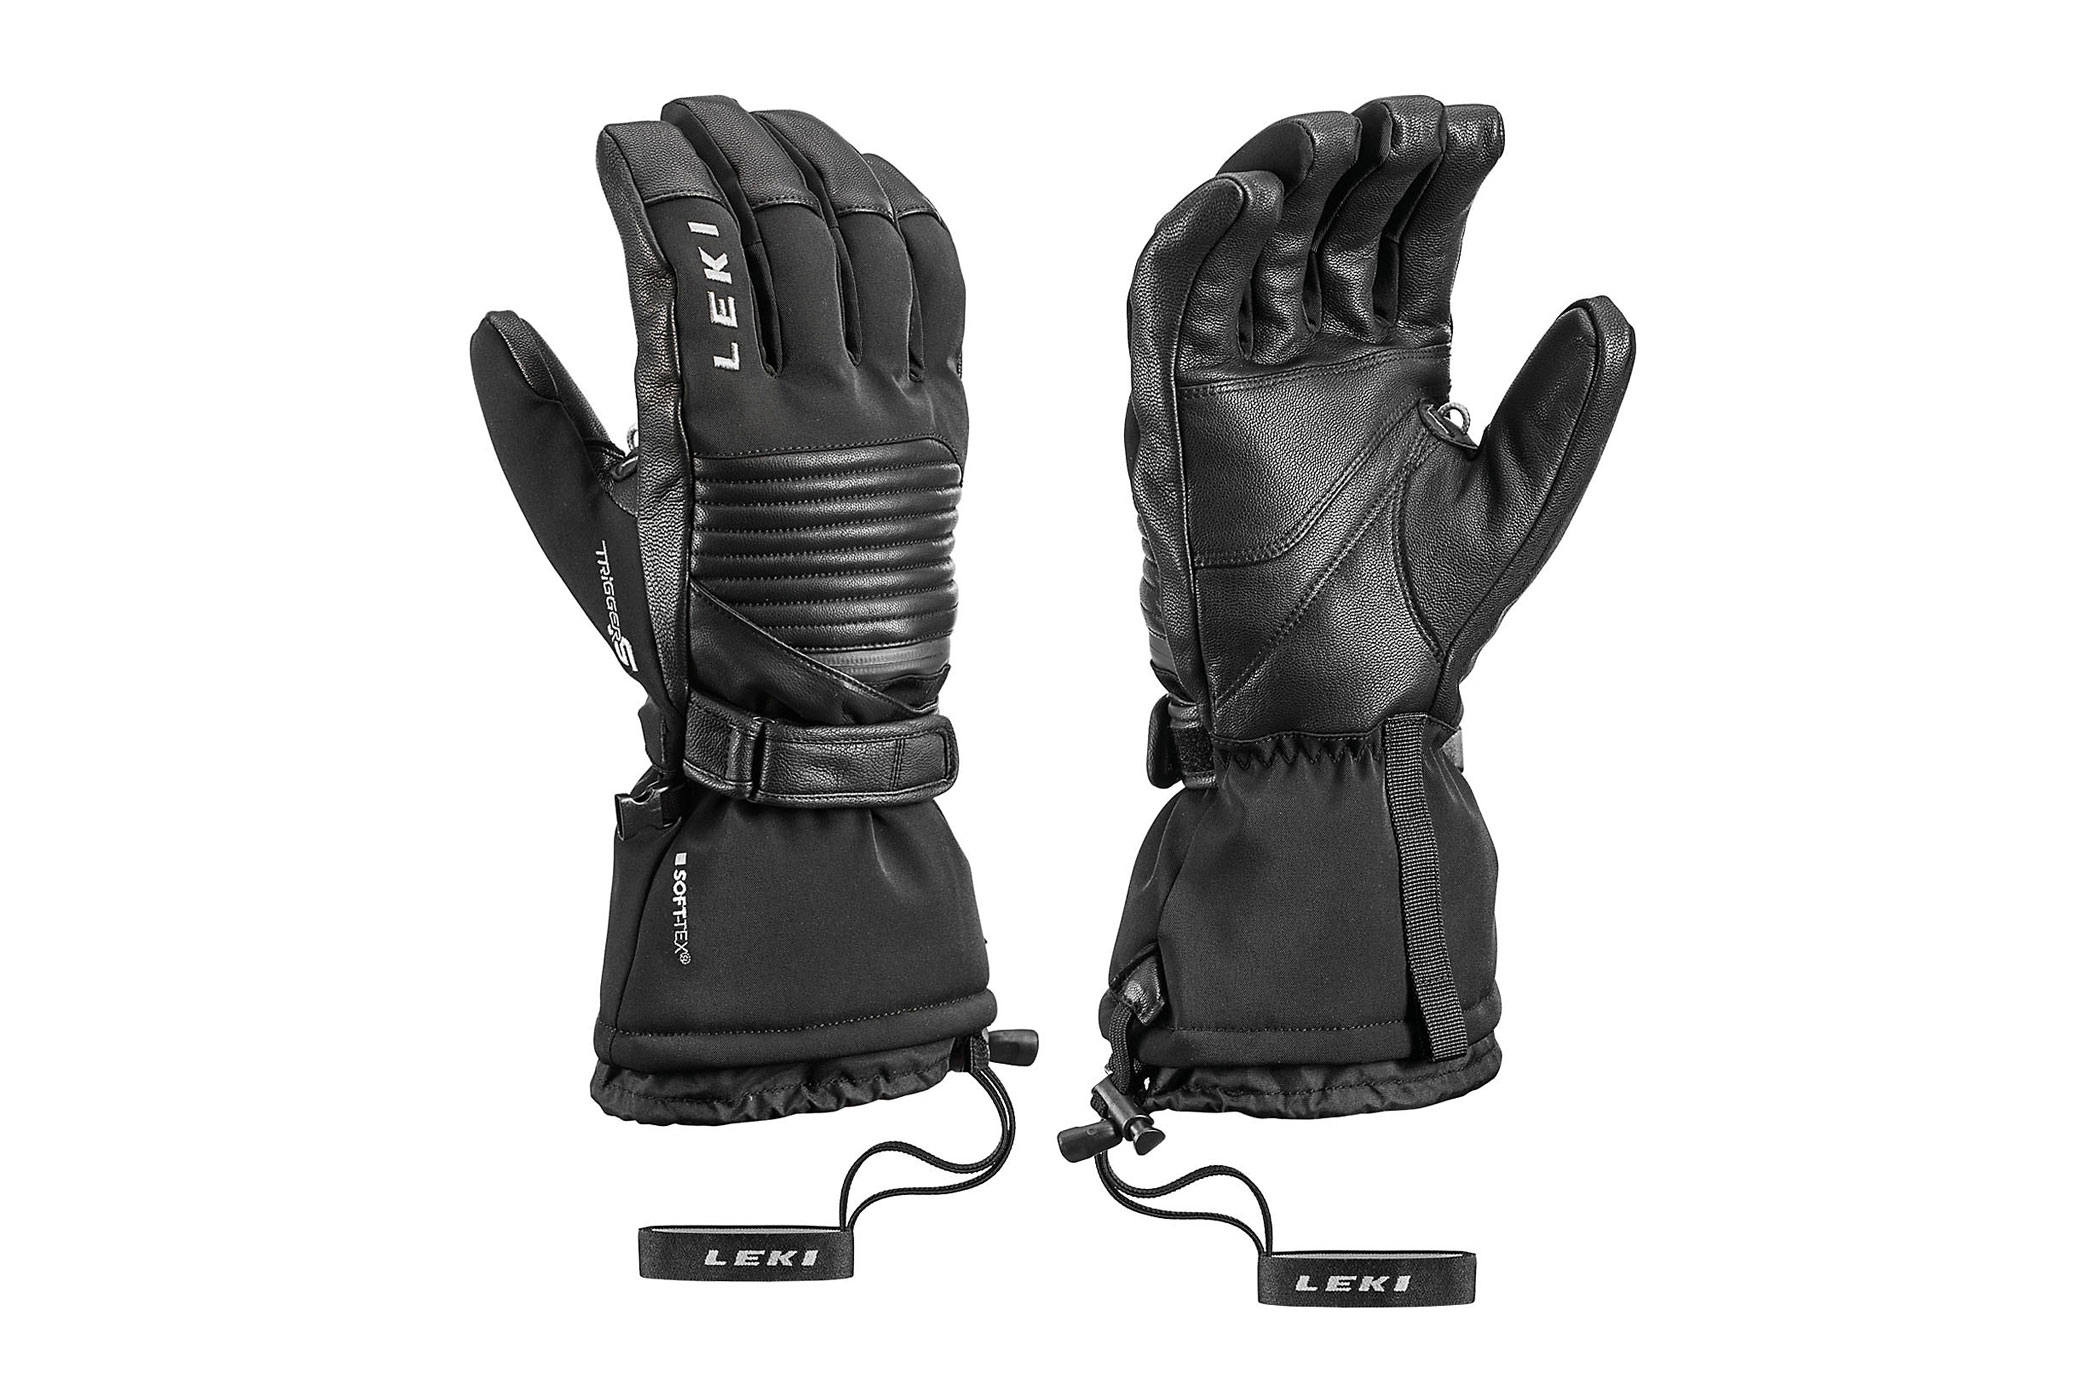 LEKI Xplore XT S Lady gloves